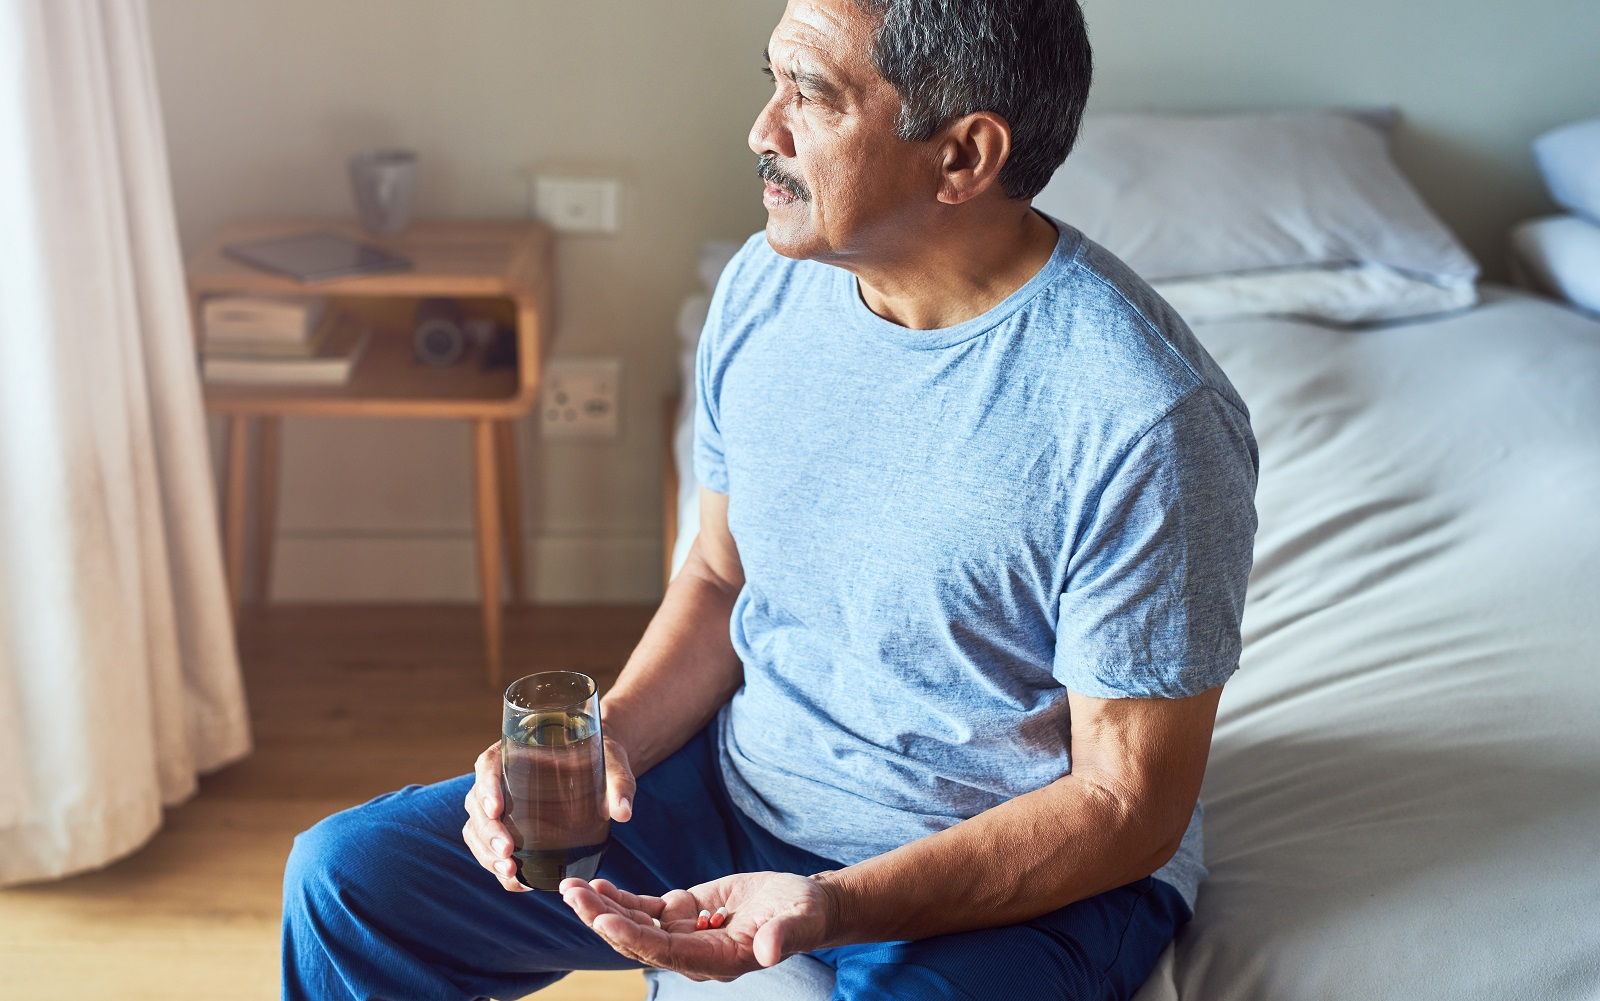 Older Male Sitting By Side of Bed Looking Sad With Pills In His Hand.